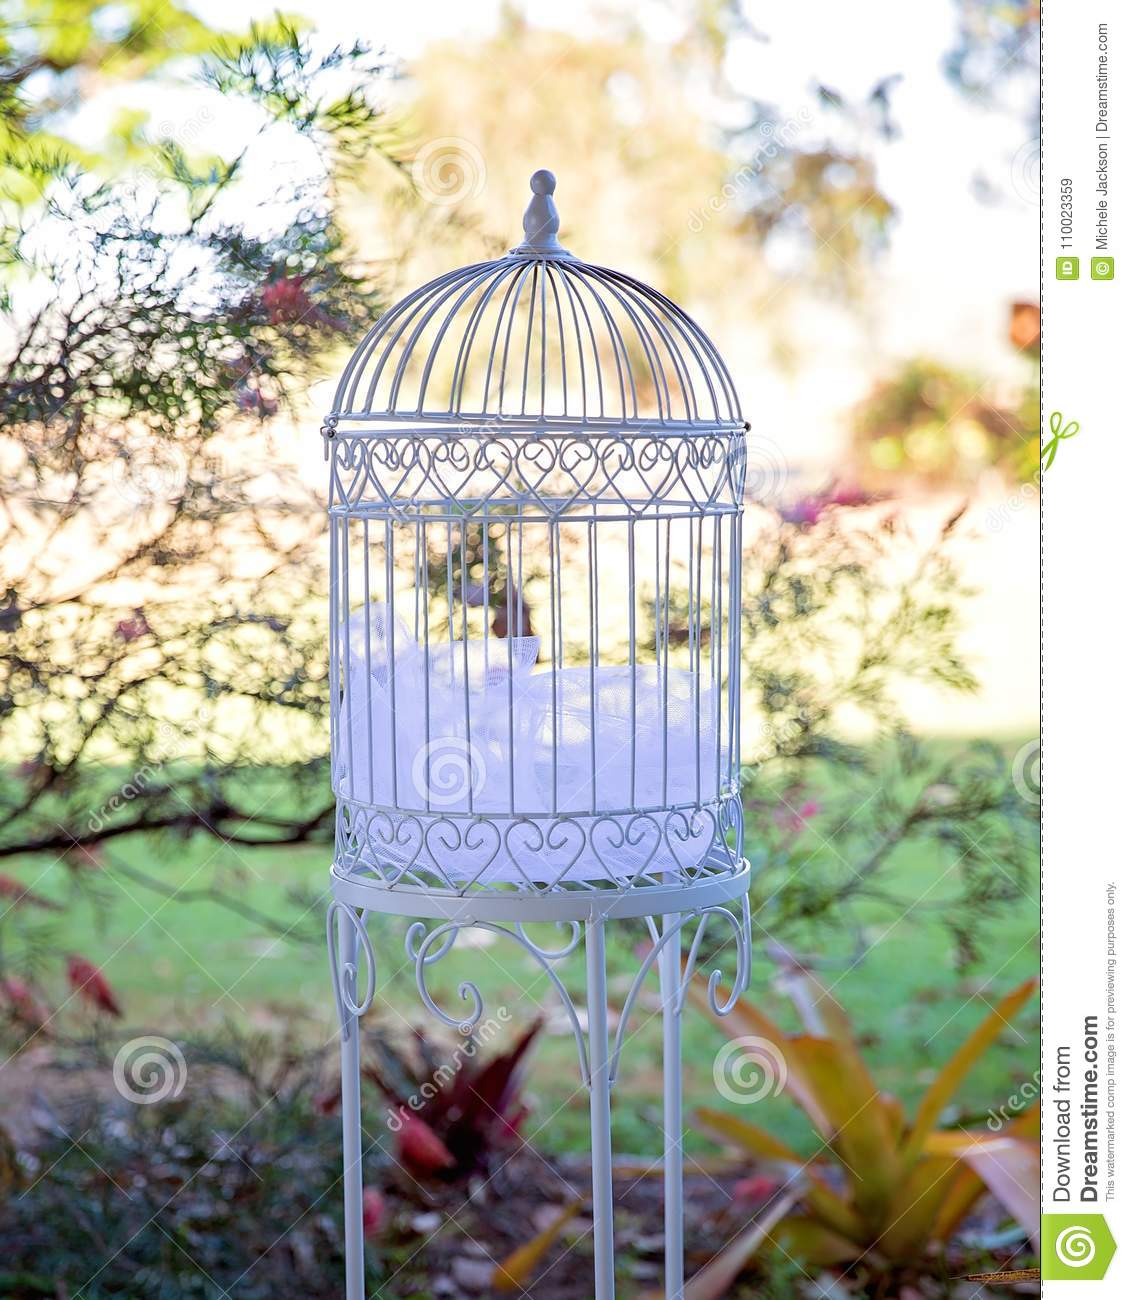 Decorative Bird Cage For A Garden Wedding Stock Image Image Of